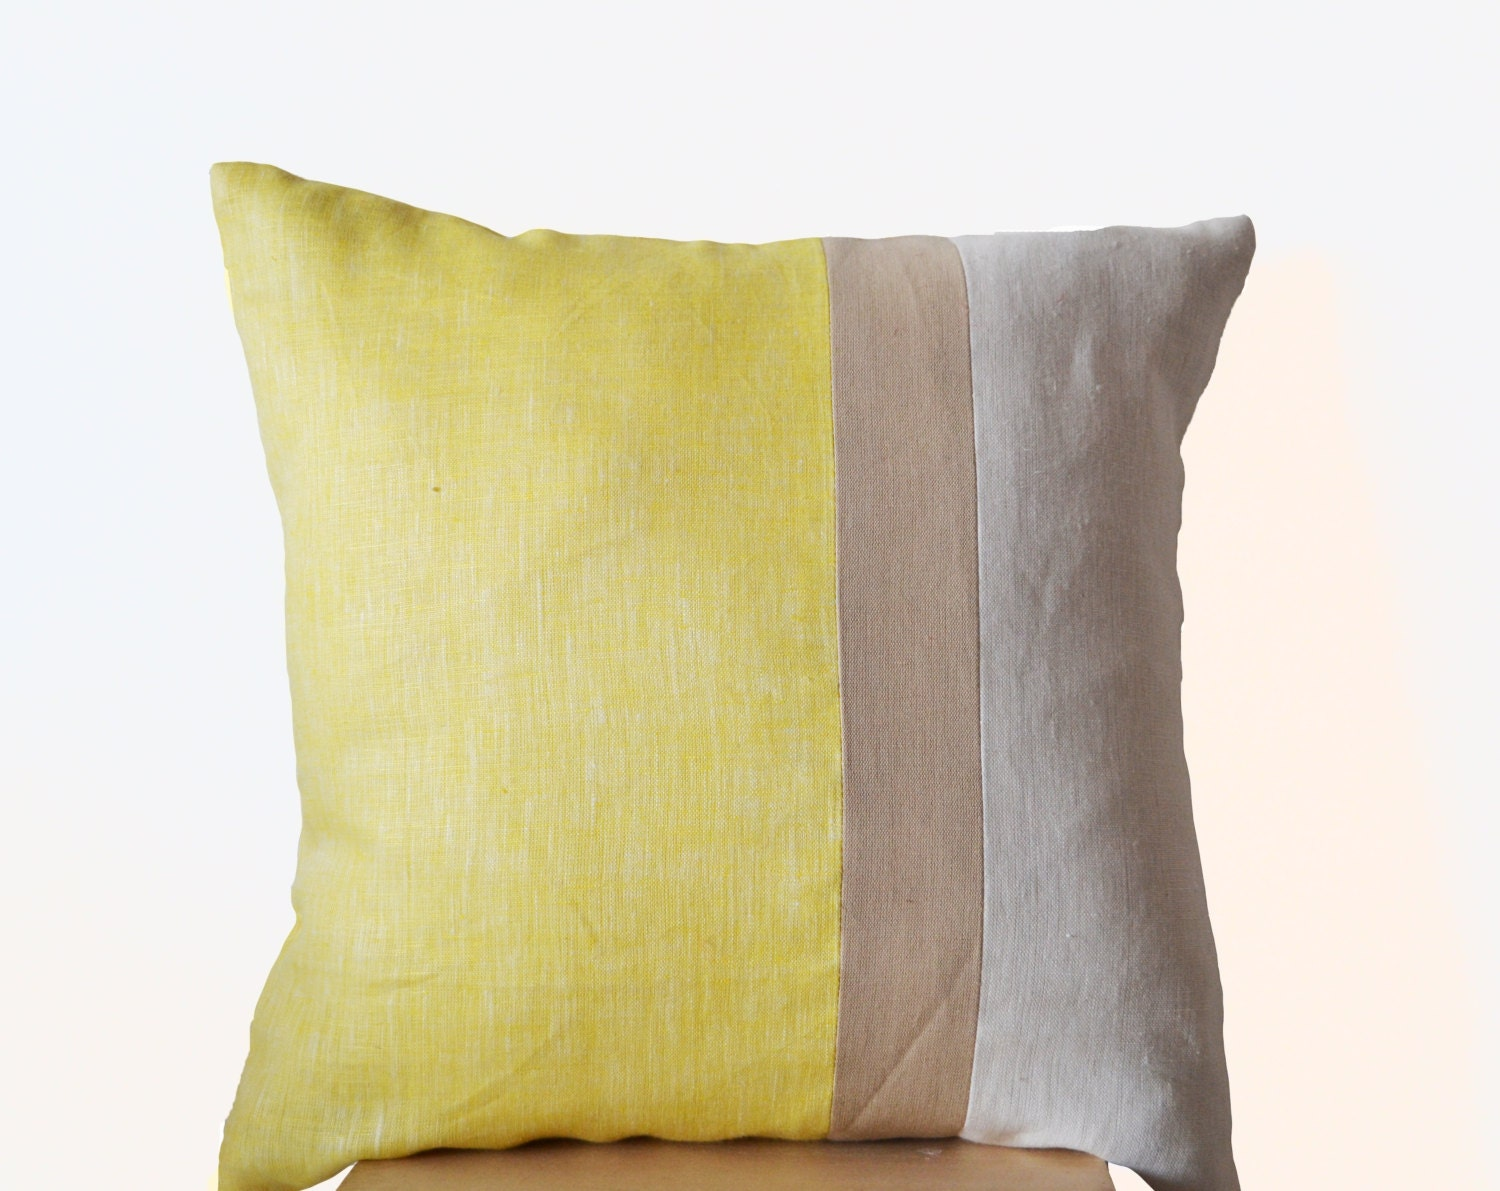 Large Throw Pillows For Couch : Yellow Pillow Cover Large Throw Pillows color block Euro